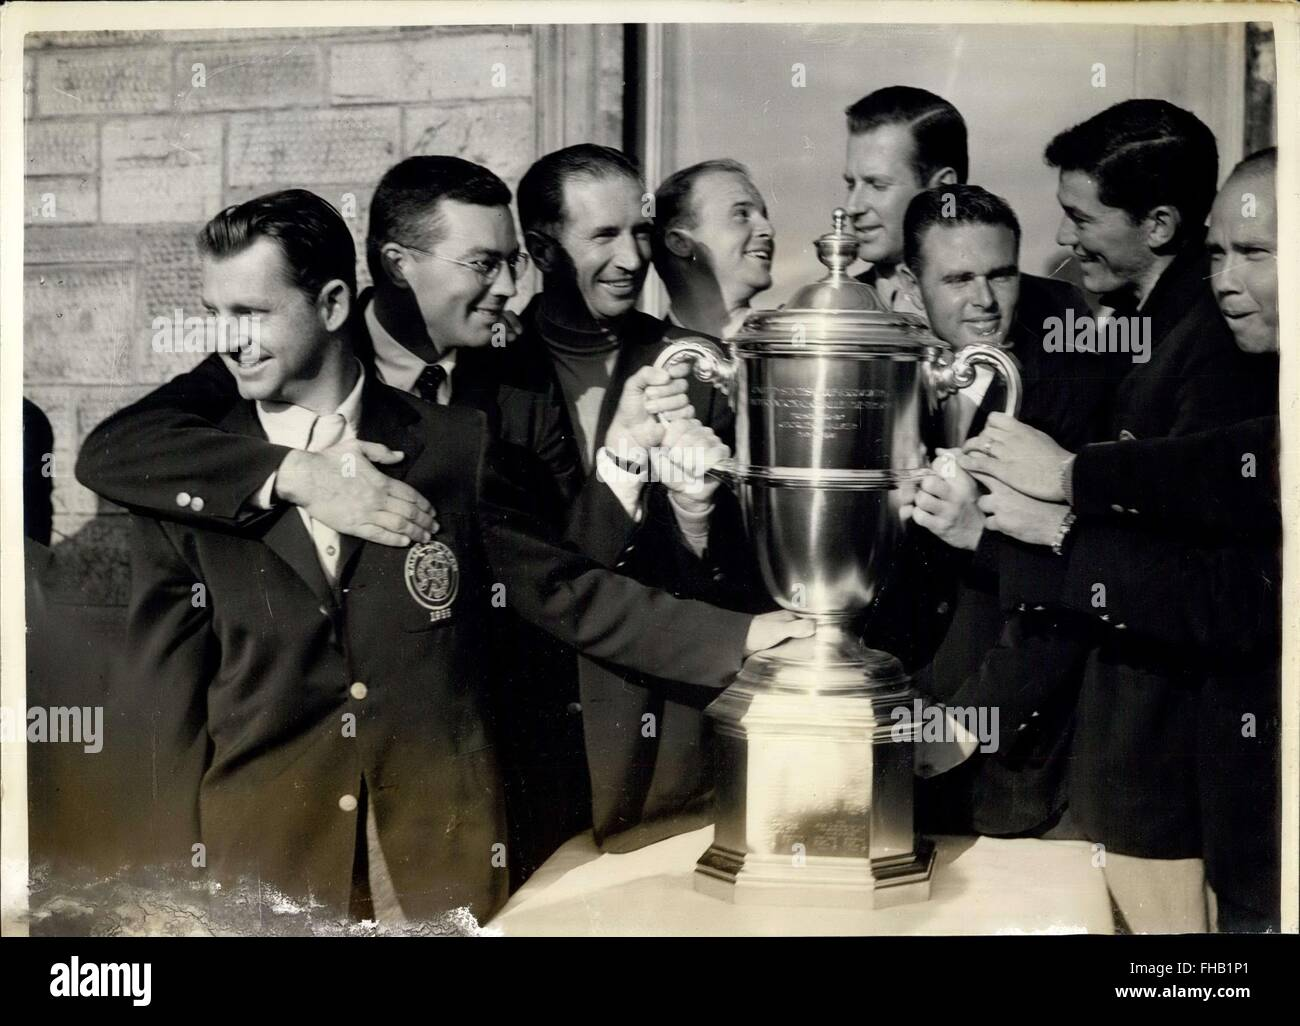 1955 - Golf at st. Andrews. Americans wins walker cup. Photo shows The Victorious American Walker cup team - photographed Stock Photo